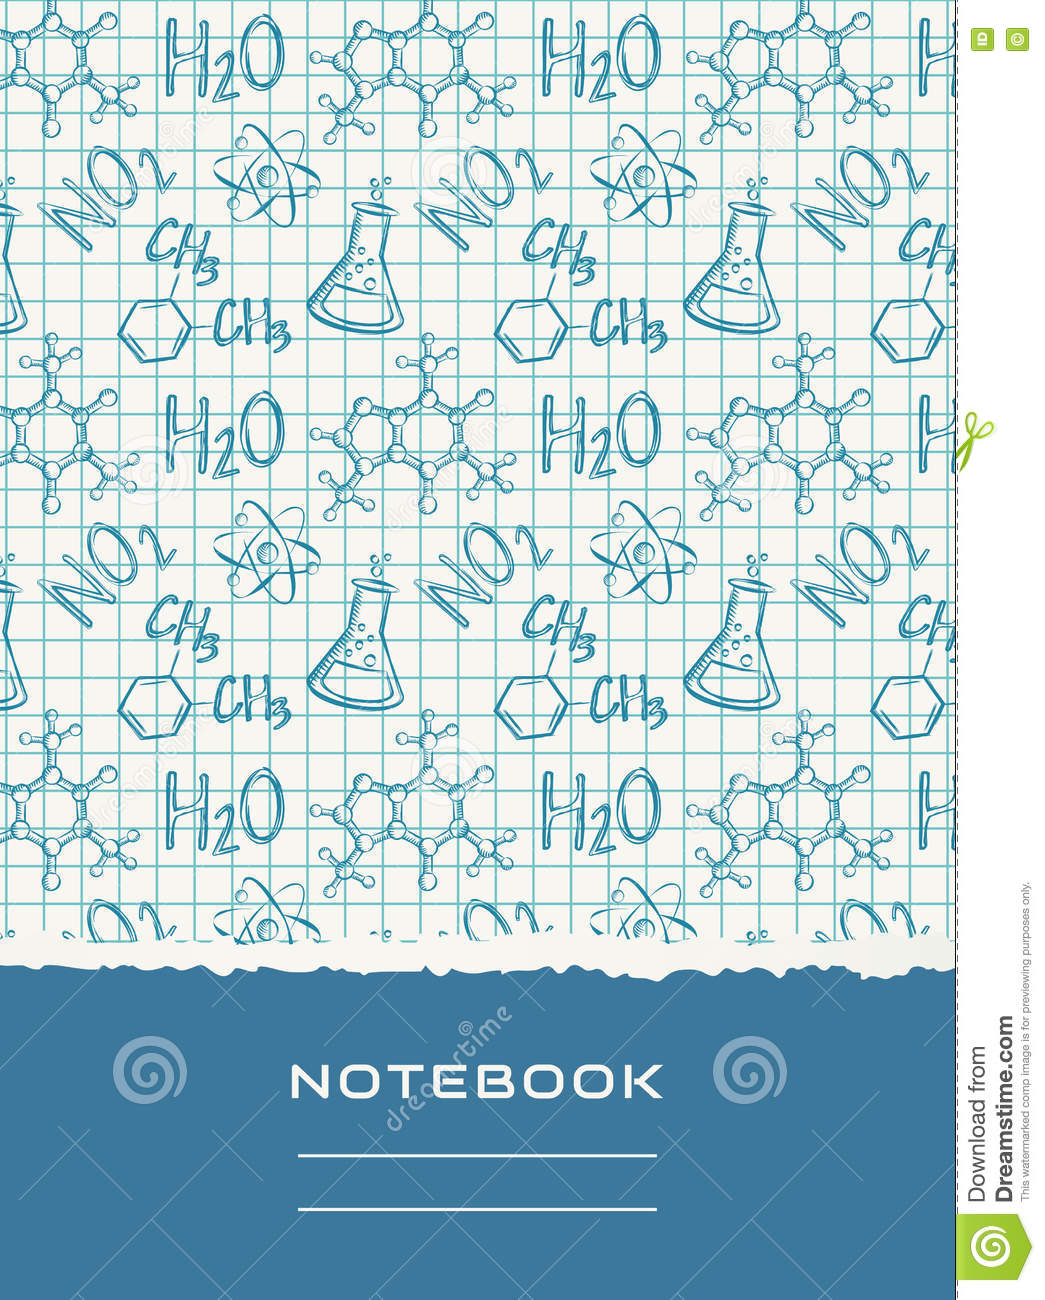 Science Design For Notebook: Notebook Cover Design. Vector Chemical Background. Stock